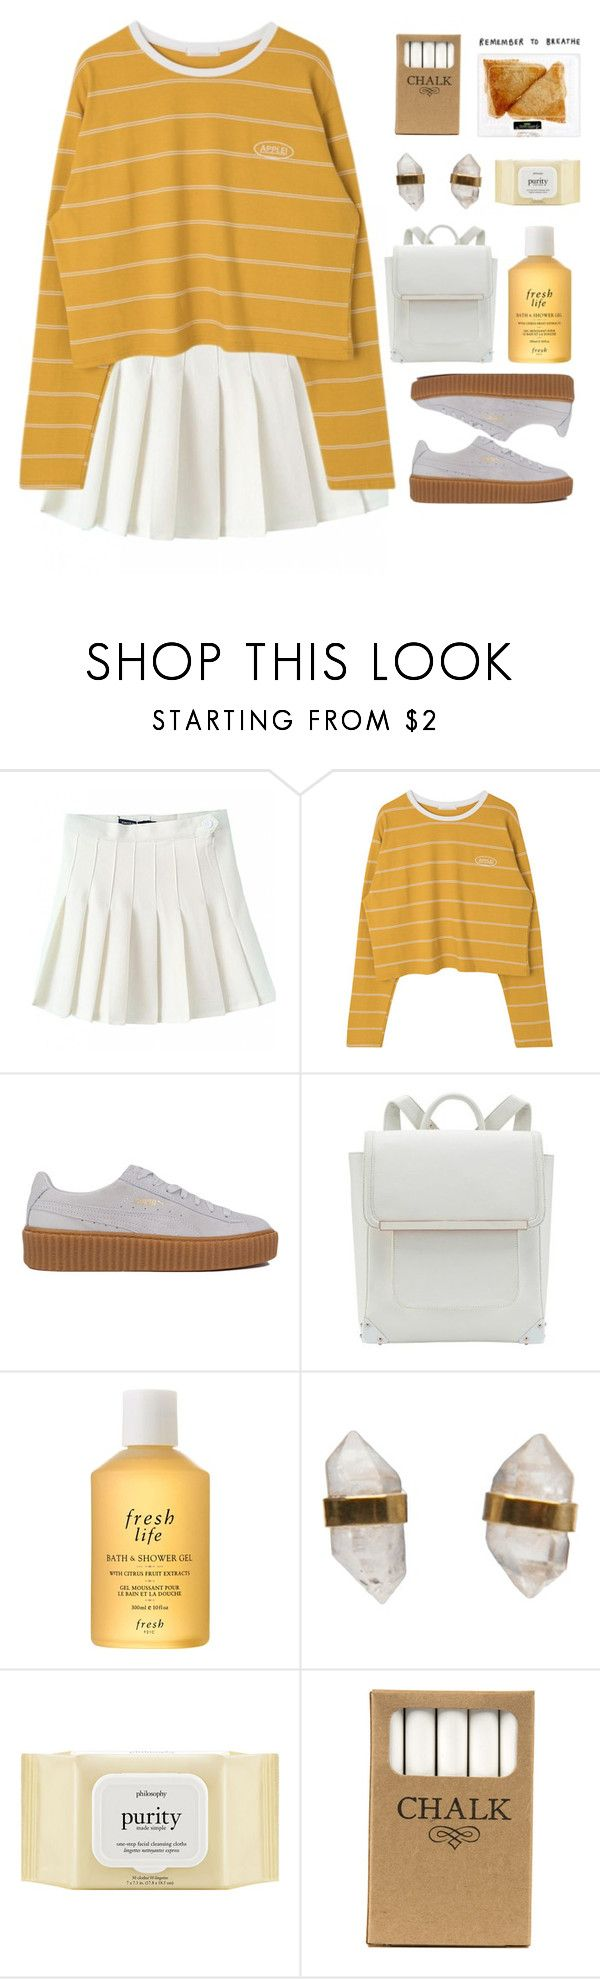 """""""fill in the blank"""" by ai-m ❤ liked on Polyvore featuring Puma, Fresh, Better Late Than Never, philosophy and Jayson Home"""